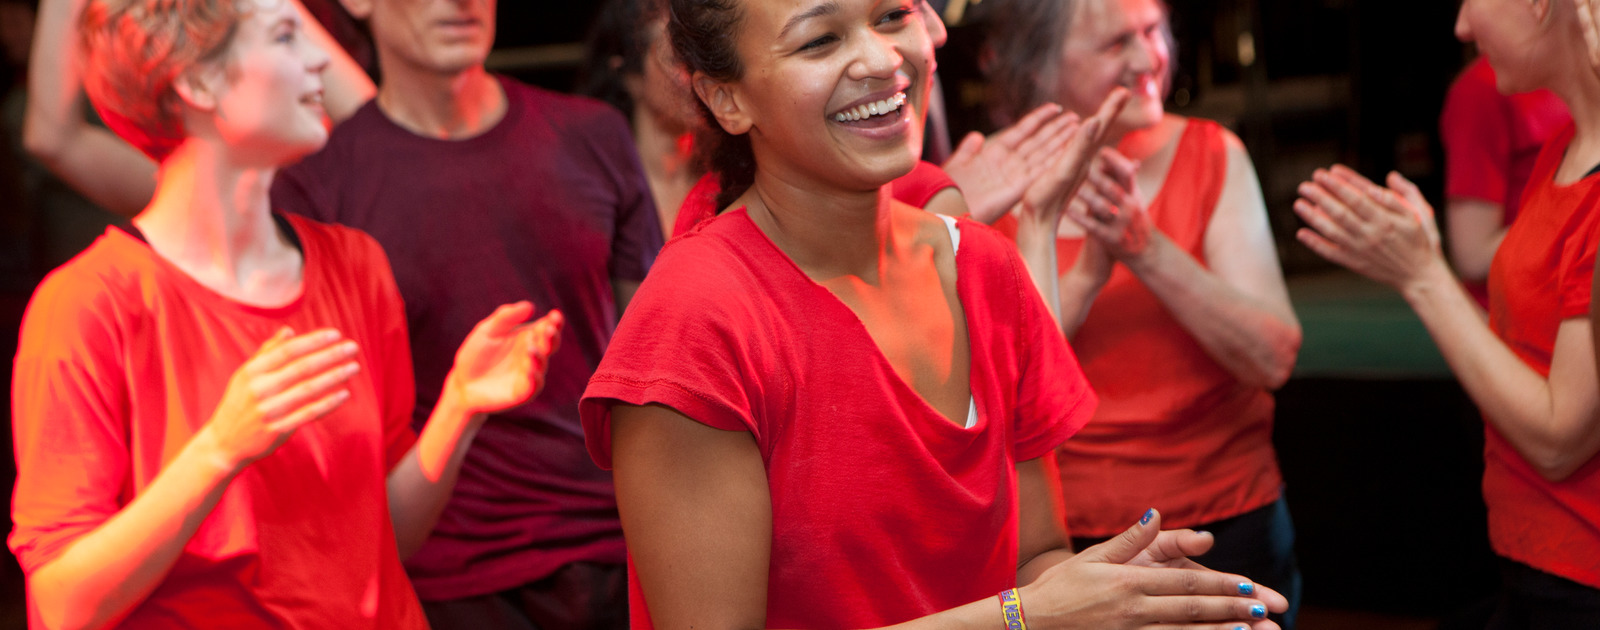 Girl dancing and smiling during a workshop at the Southbank Centre